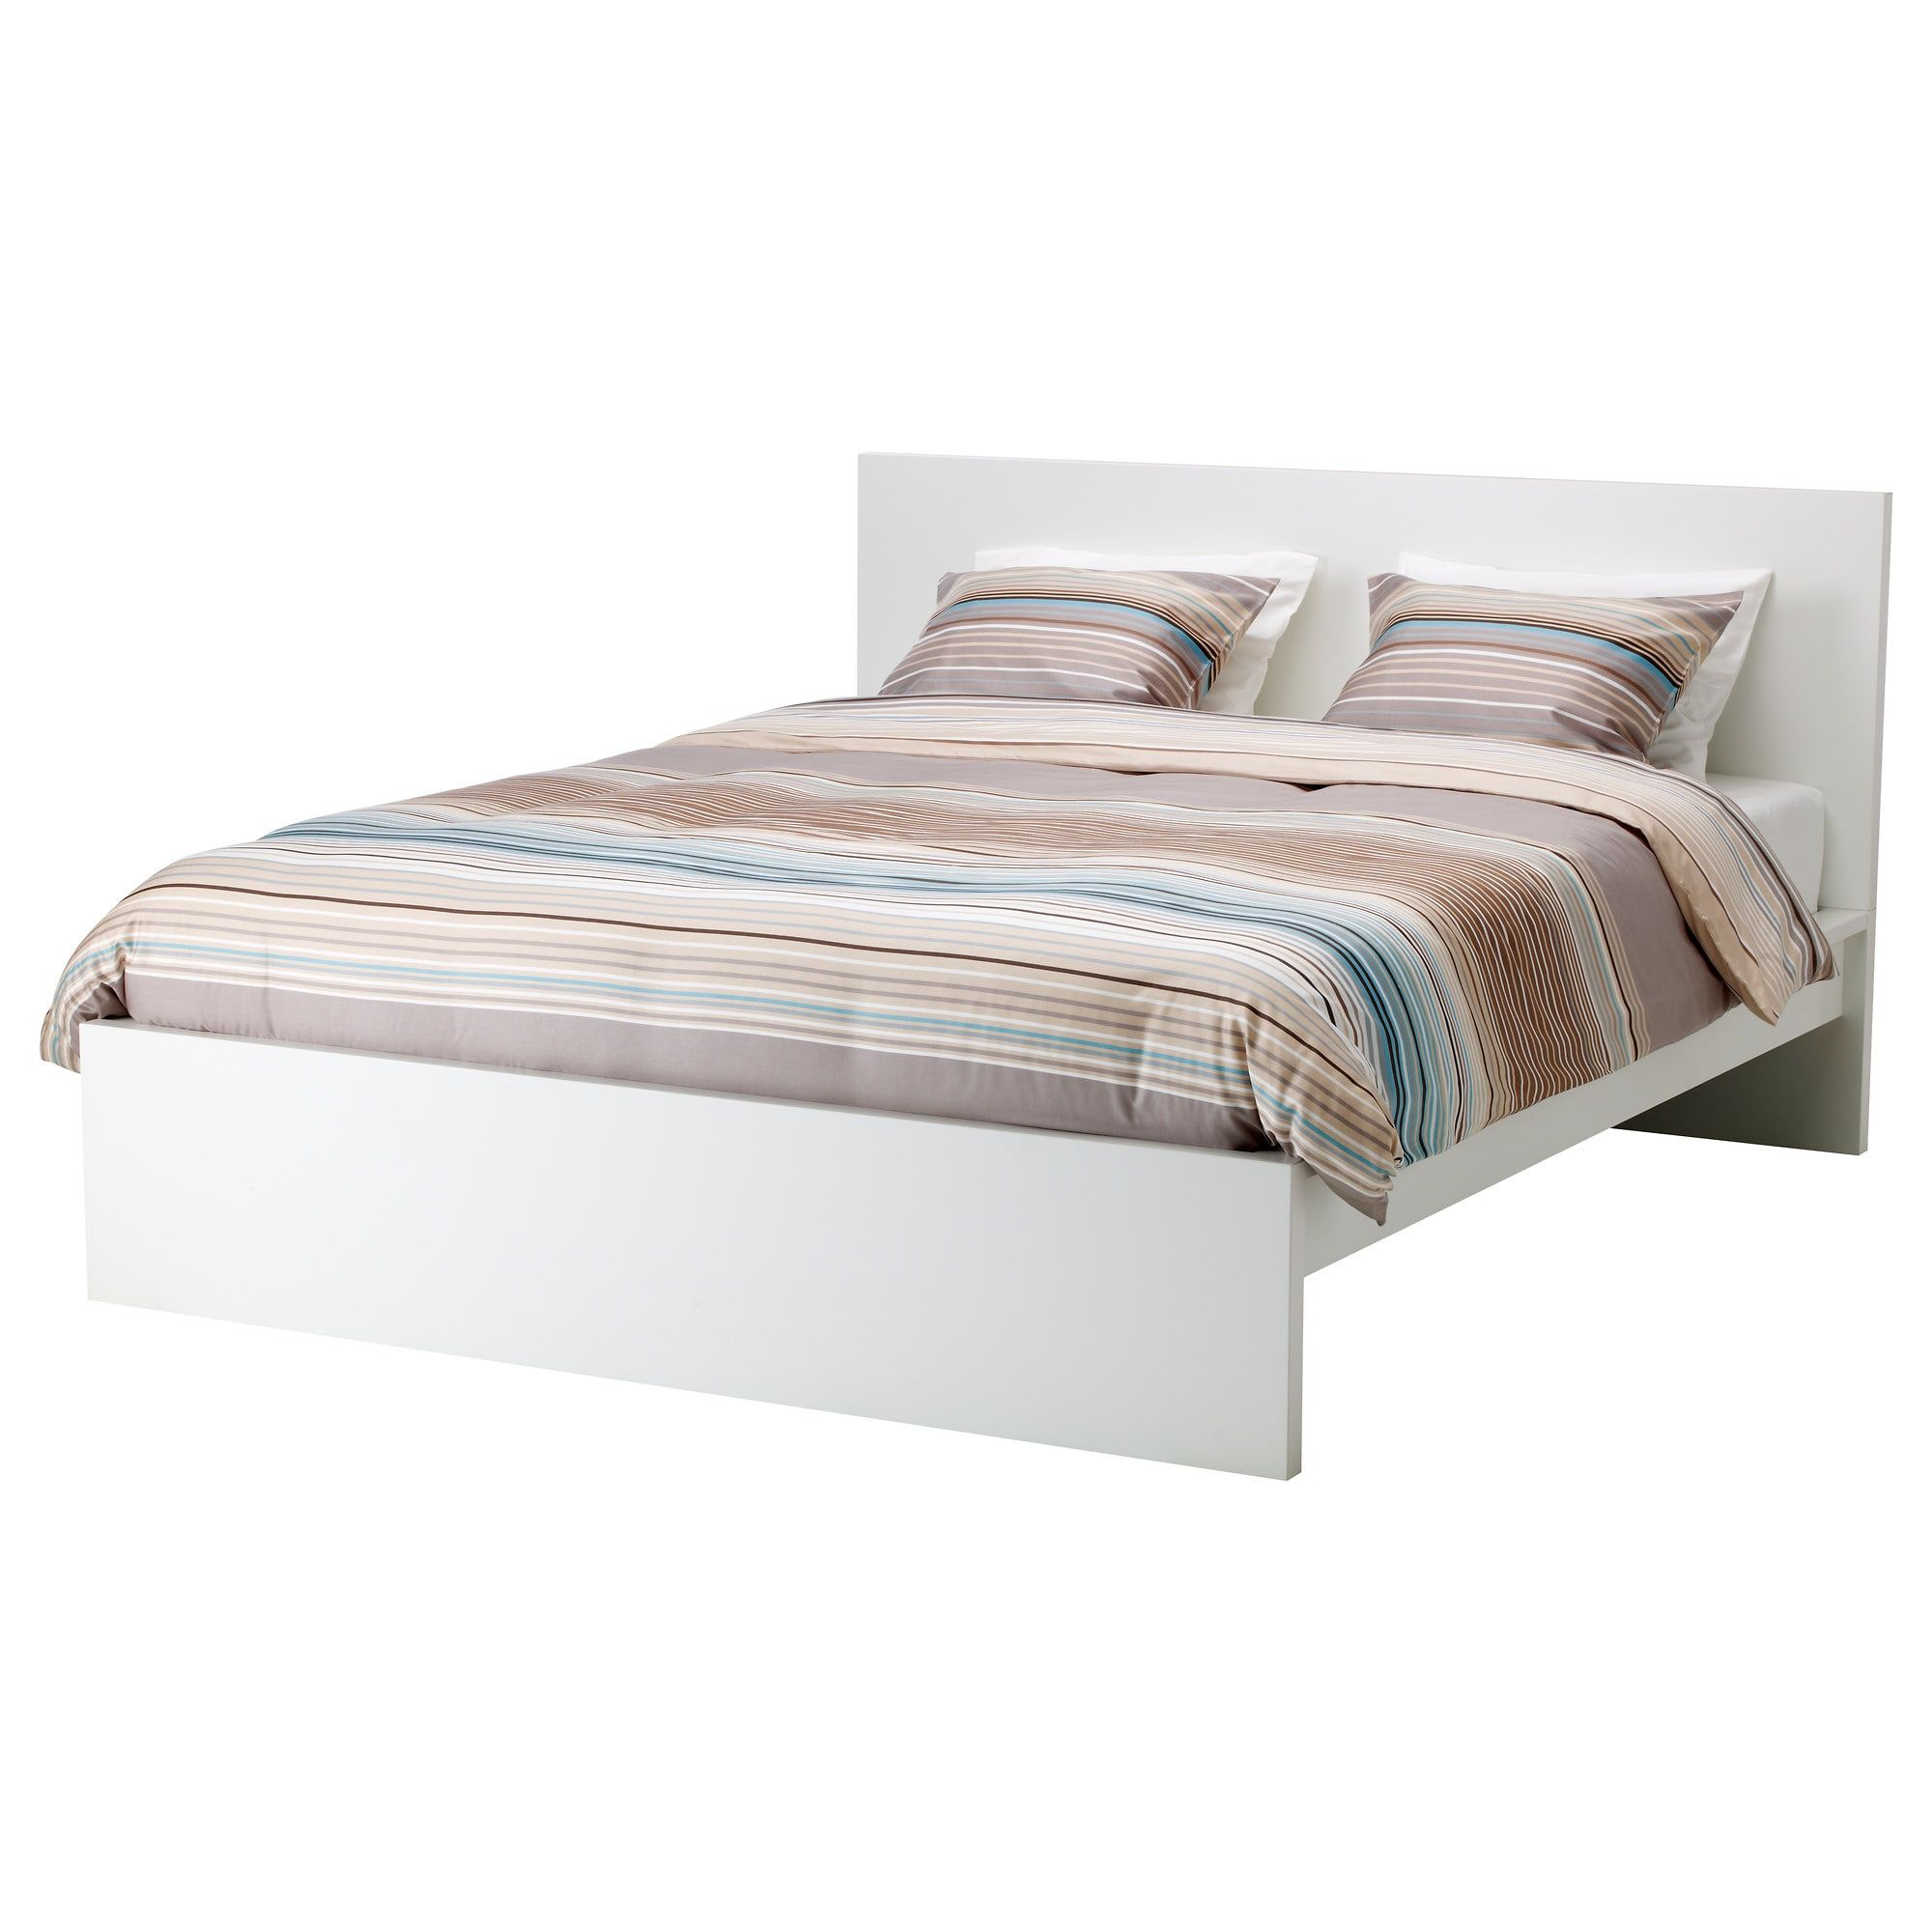 Malm Bed Frame High White Luroy Queen Ikea Malm Bed Frame Malm Bed Ikea Malm Bed